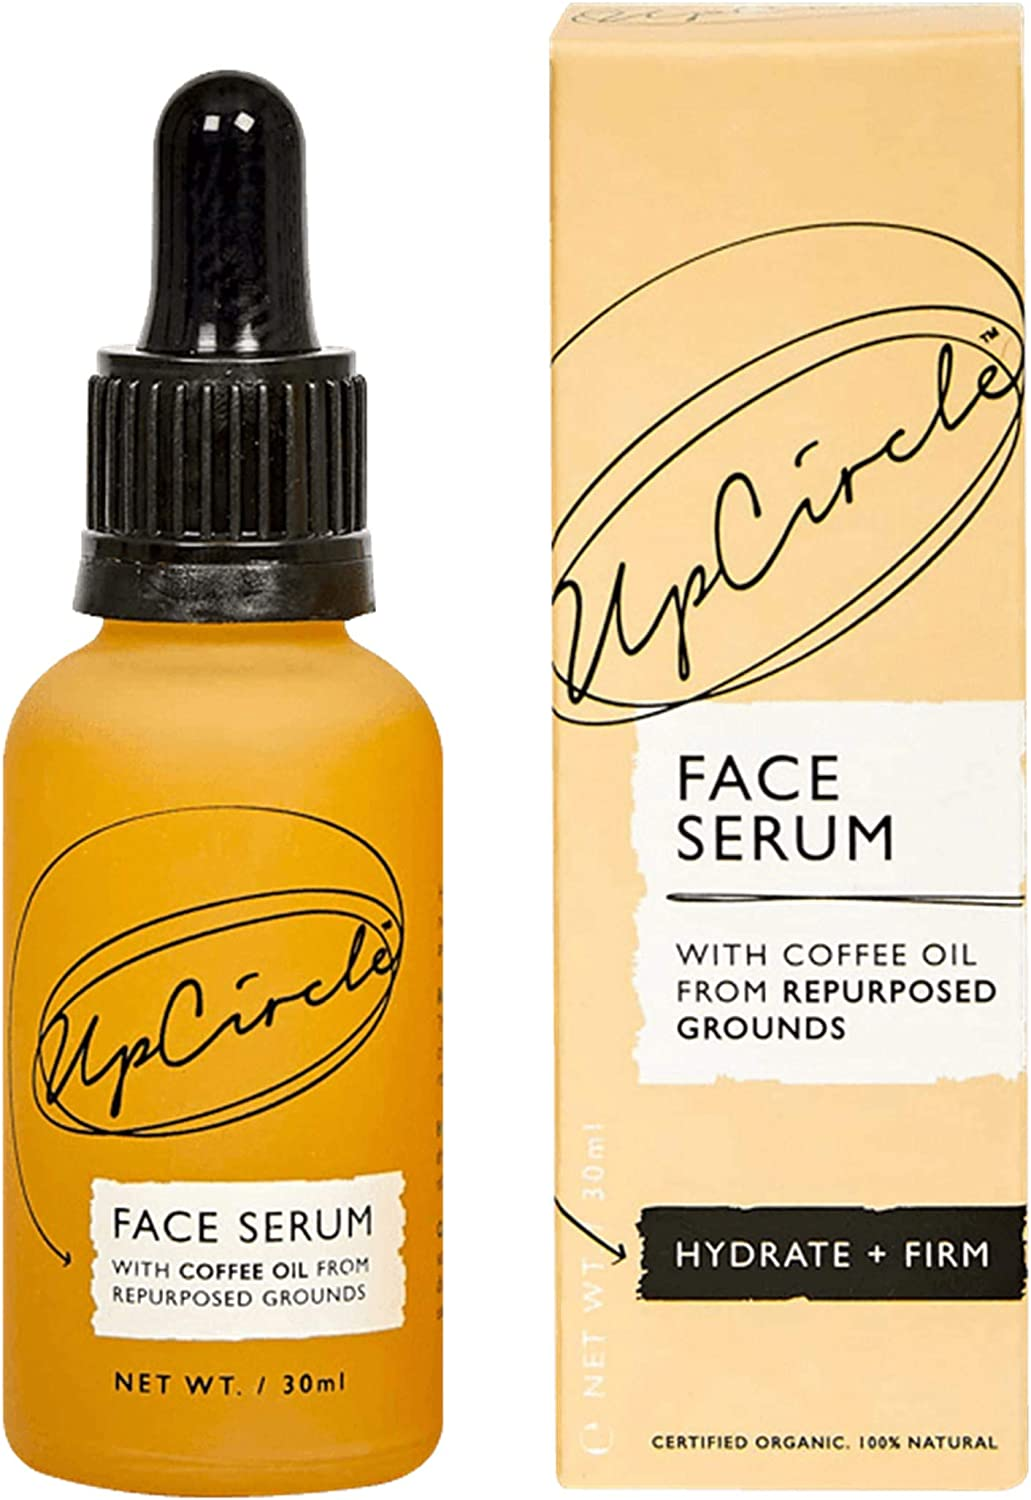 UpCircle Organic Facial Serum With Coffee Oil